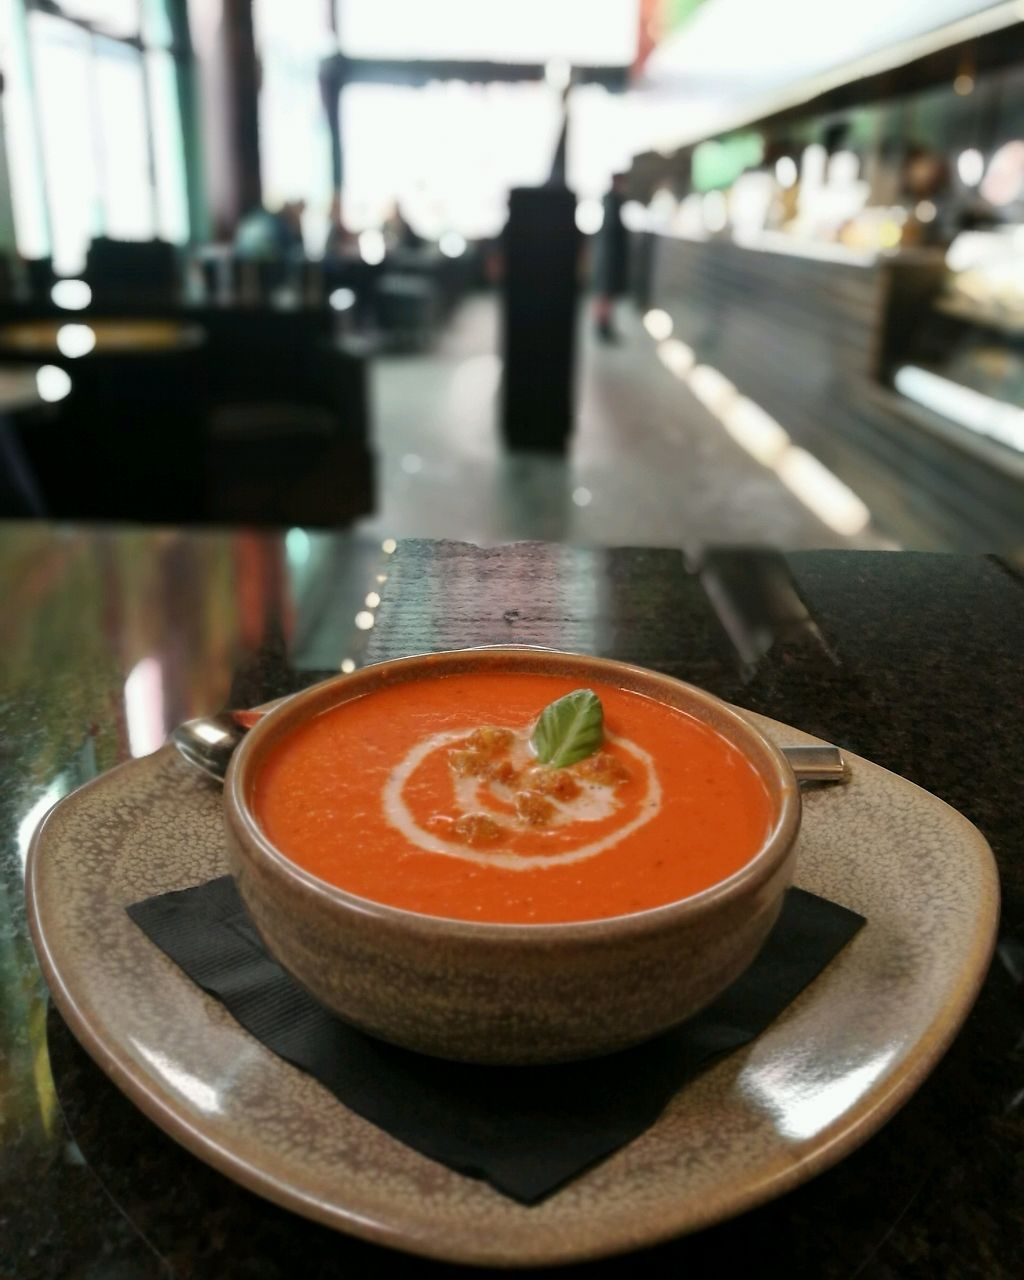 "Photo of Kicking Horse Cafe  by <a href=""/members/profile/Ritakafija"">Ritakafija</a> <br/>Carrot and ginger soup <br/> April 4, 2018  - <a href='/contact/abuse/image/116318/380440'>Report</a>"